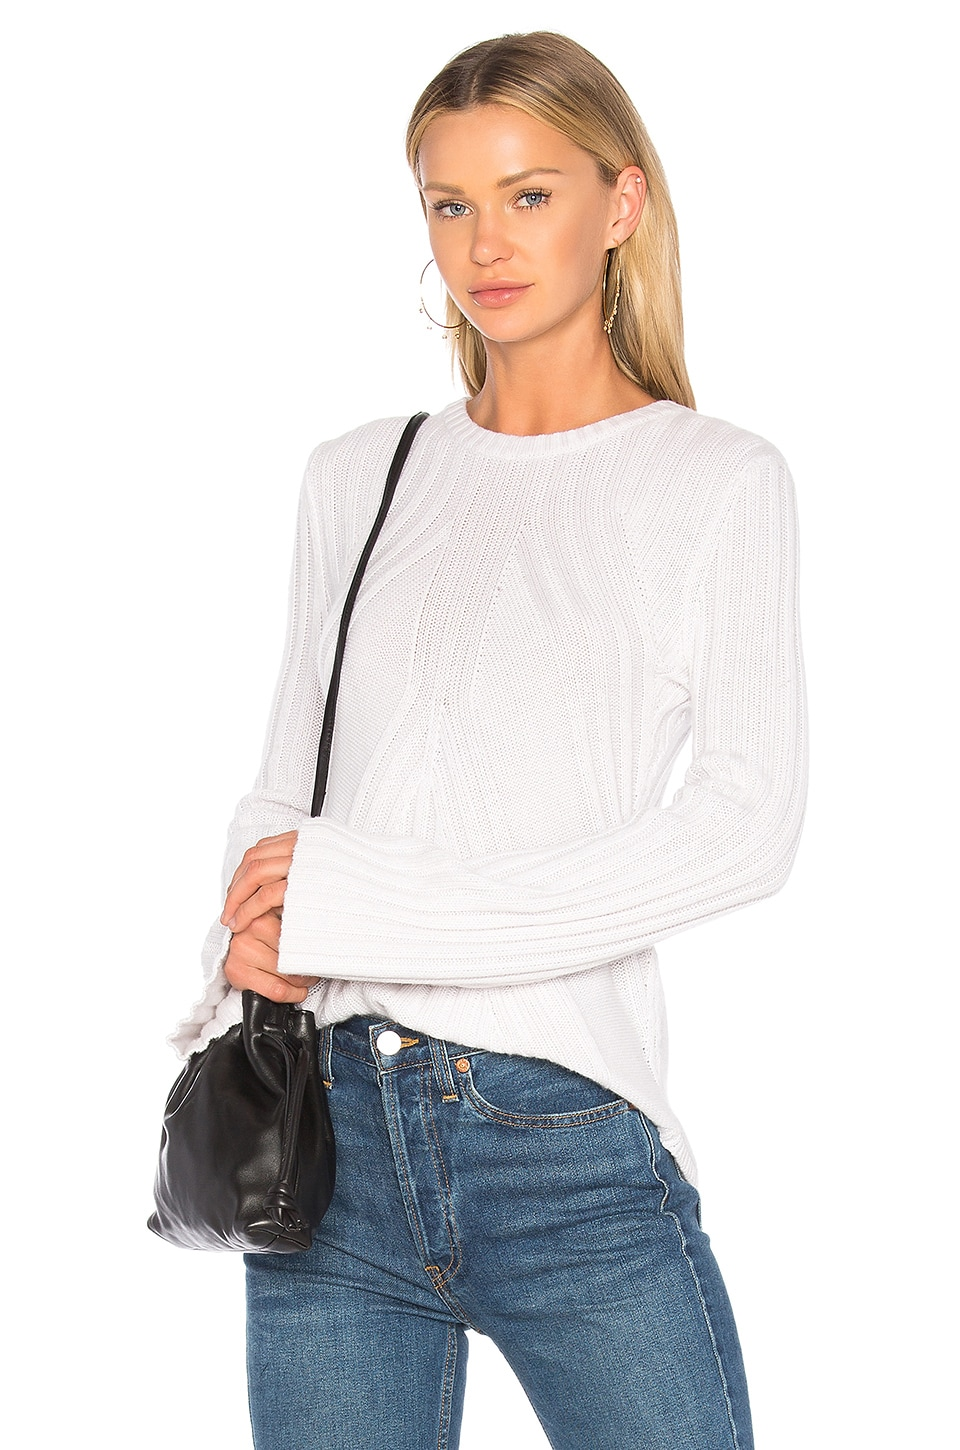 Autumn Cashmere Ribbed Flare Sweater in Platinum